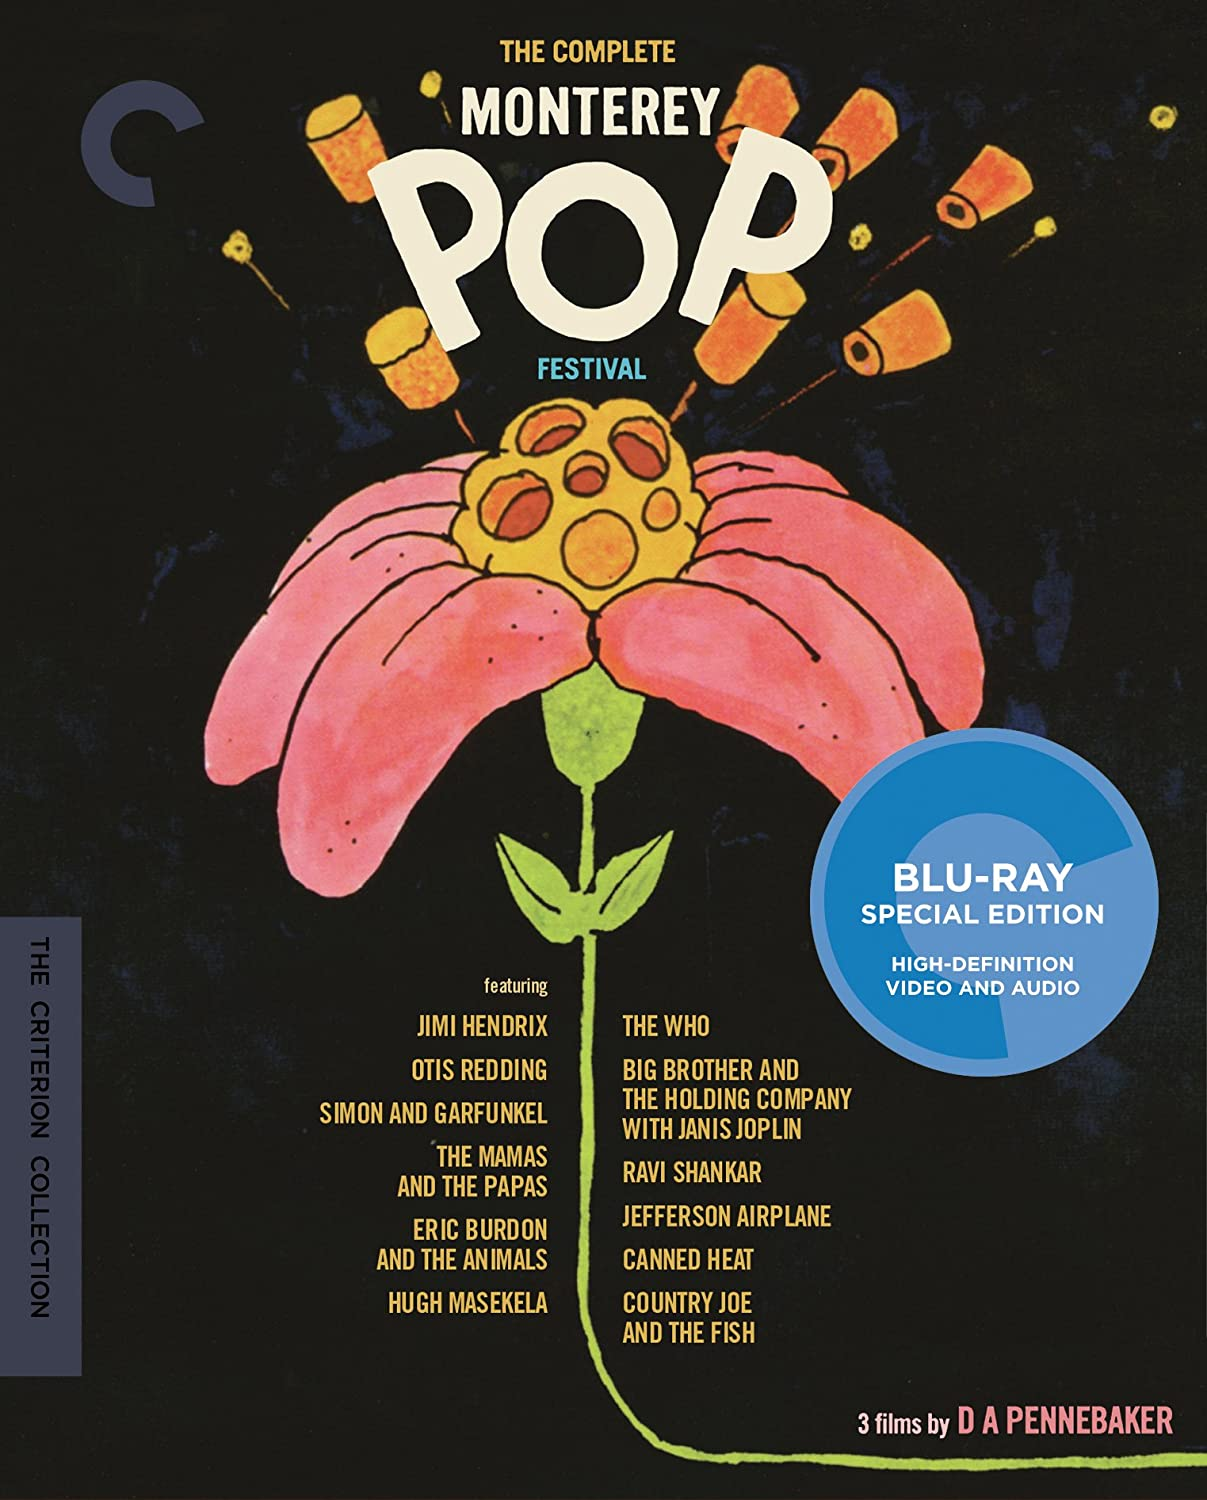 The Complete Monterey Pop Festival The Criterion Collection